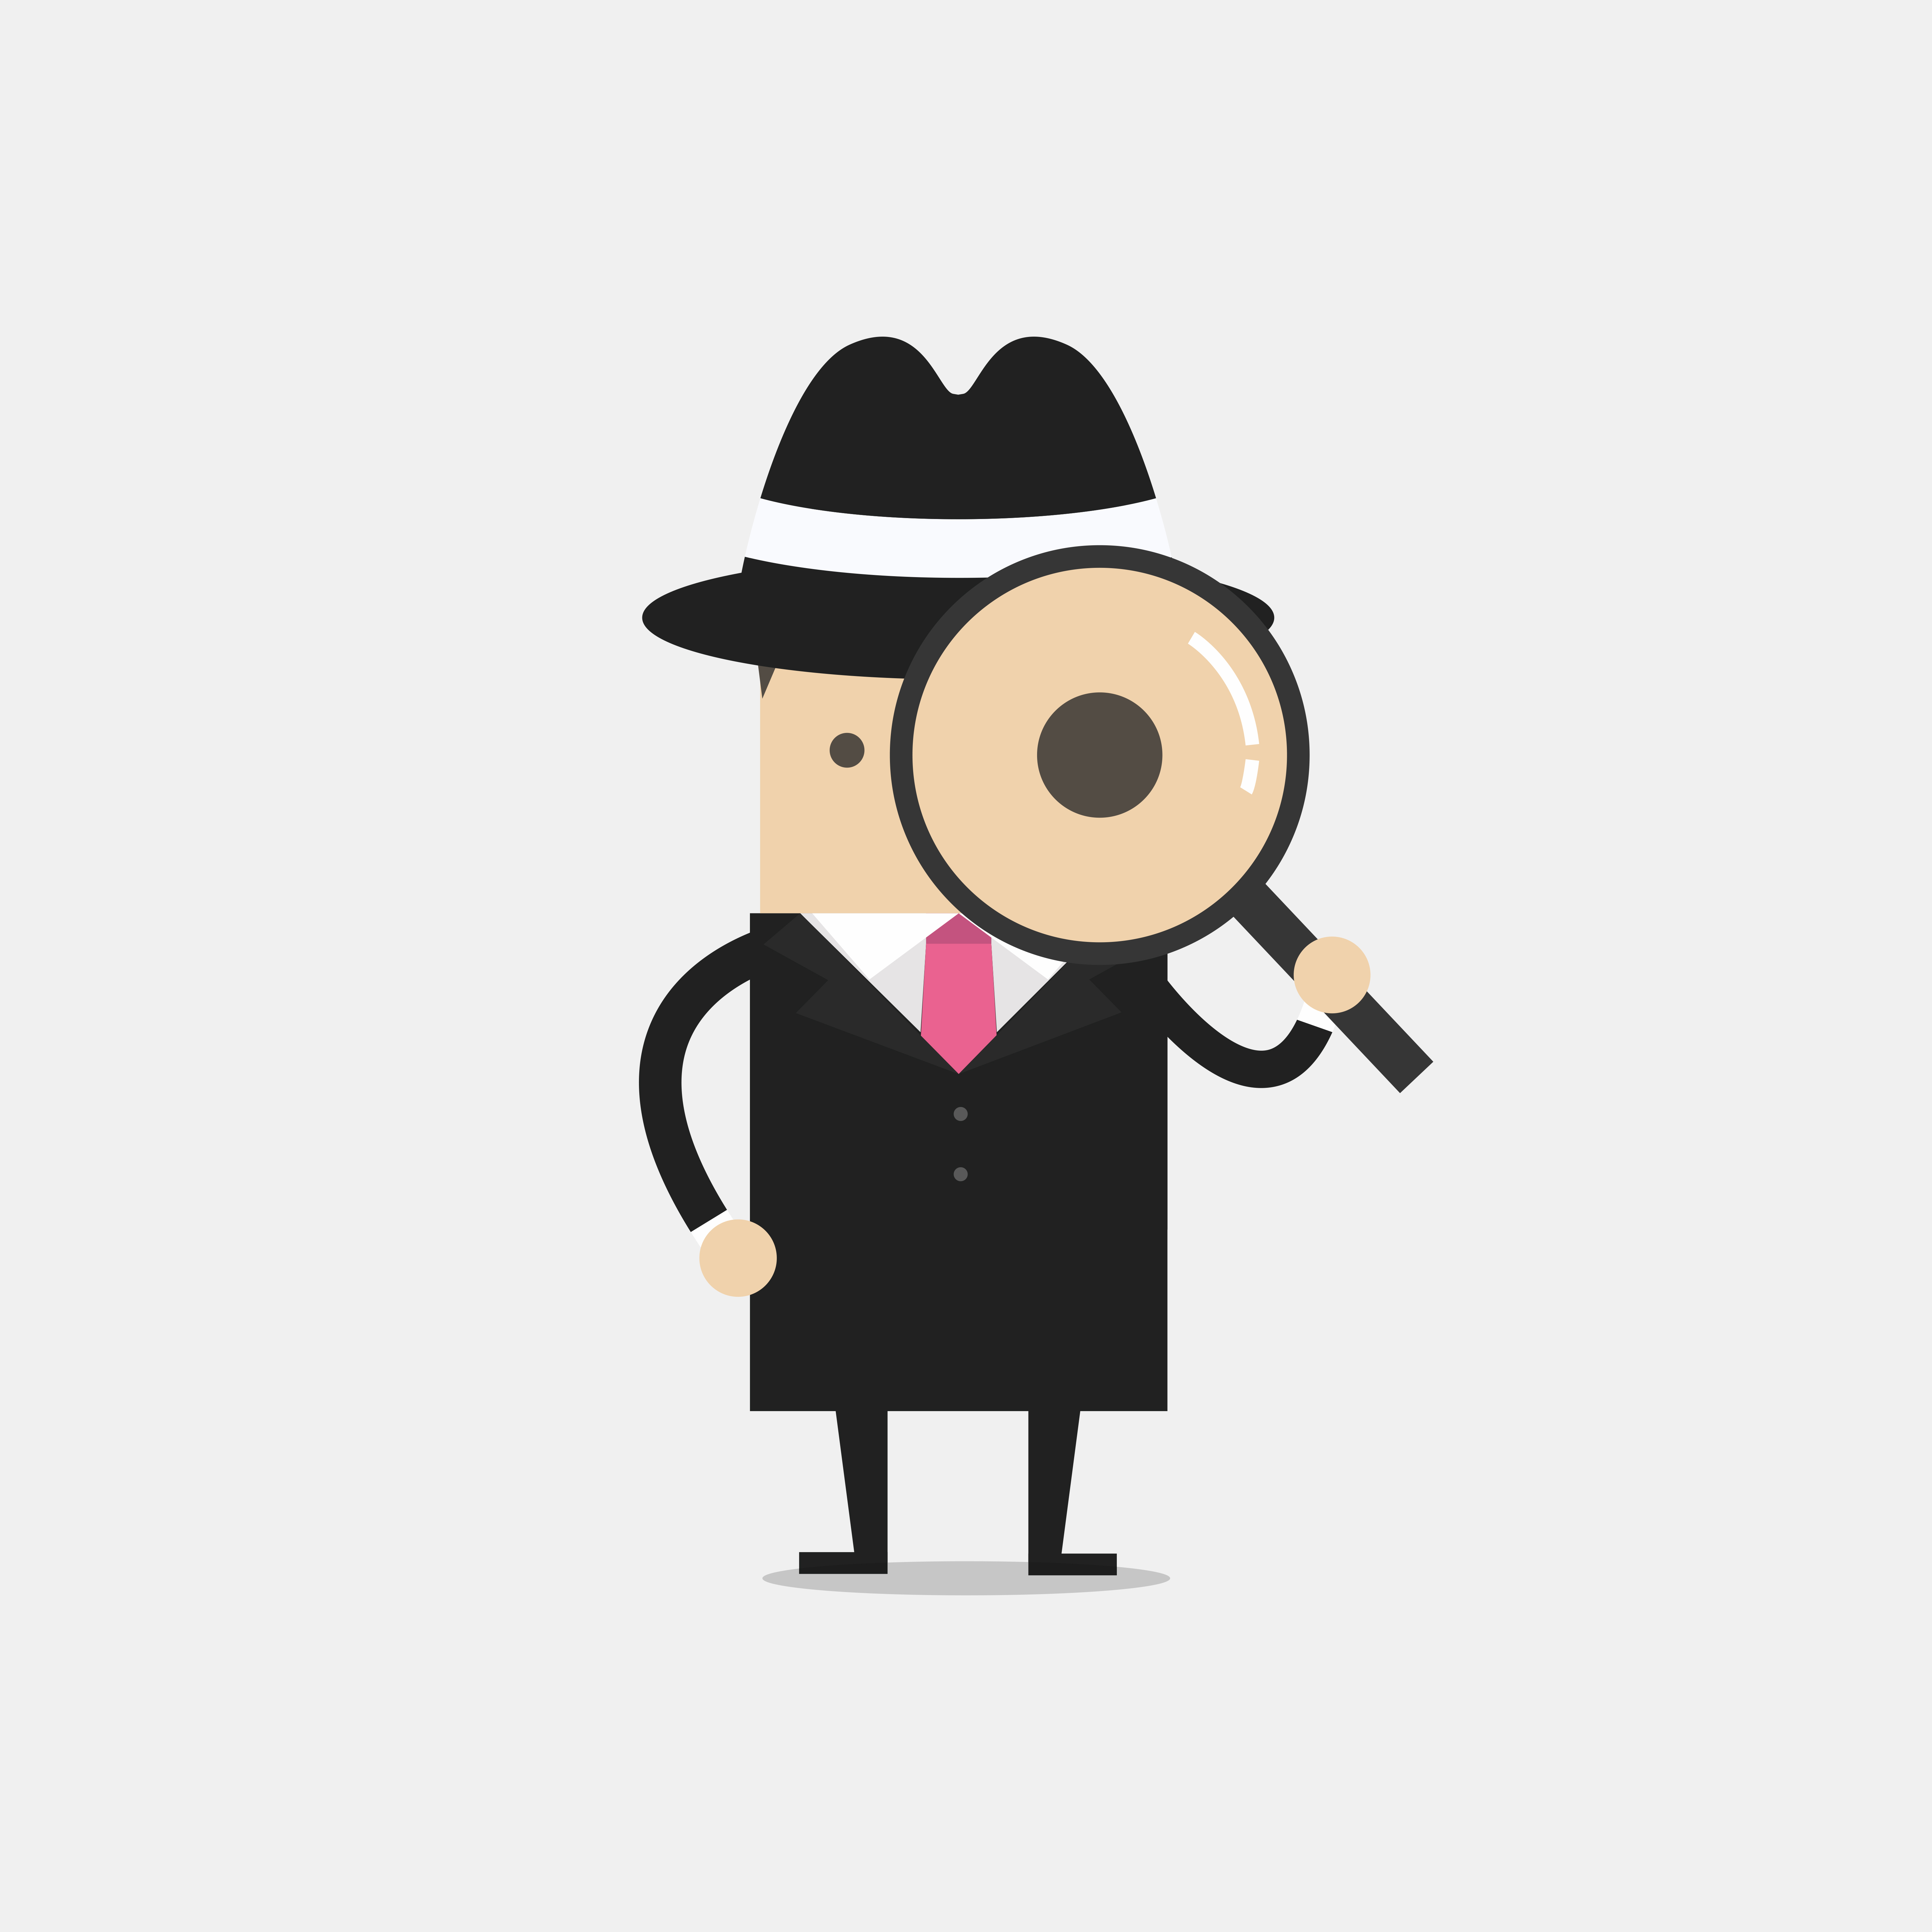 Image of a detective with a magnifying glass.